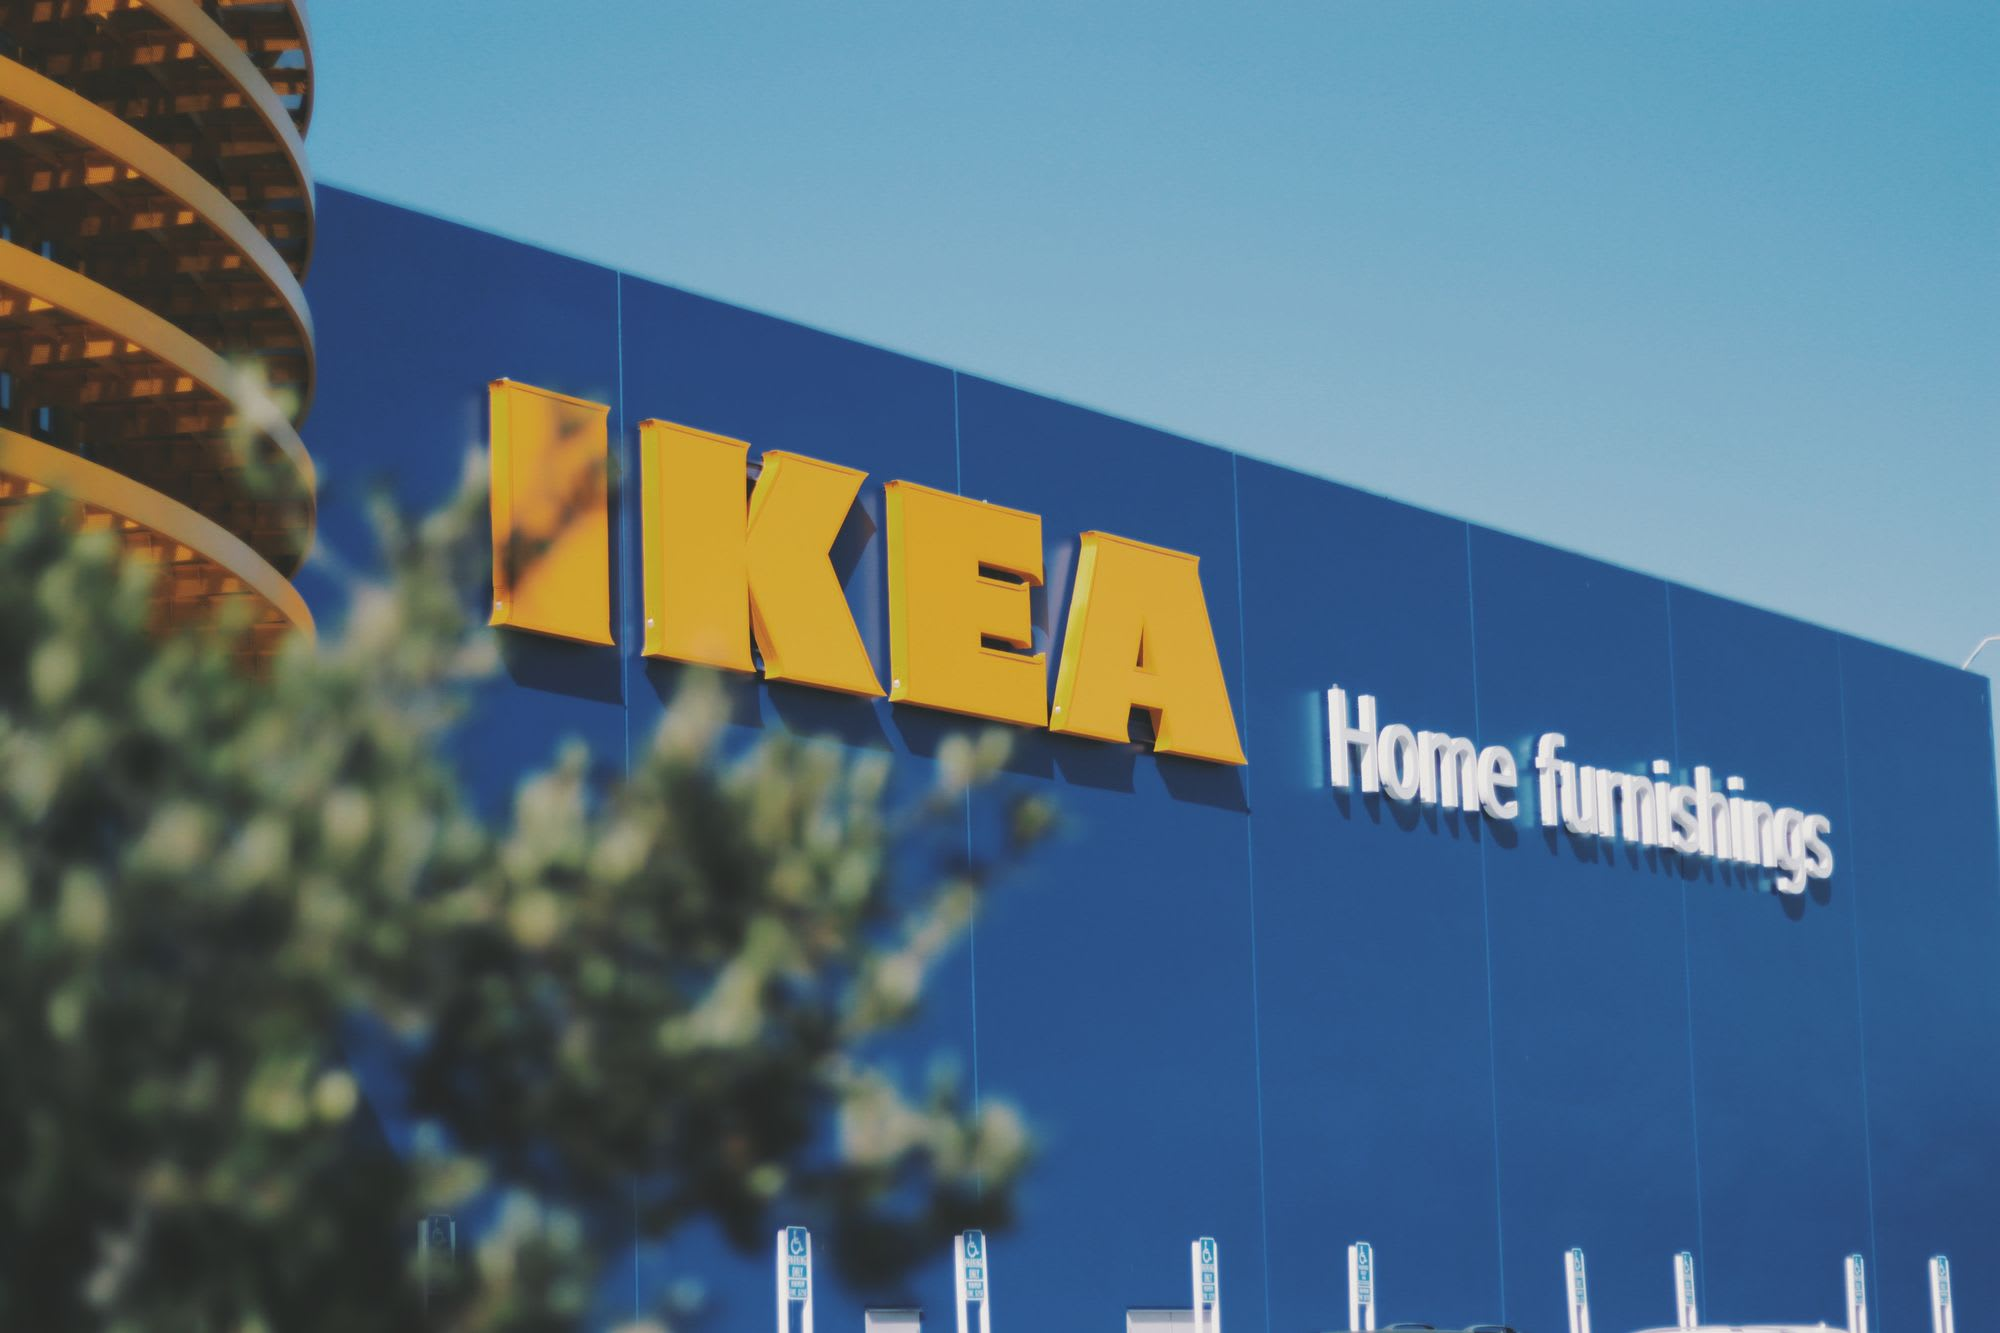 Background Image for Mobility Data – A tale of two IKEA's in Bucharest